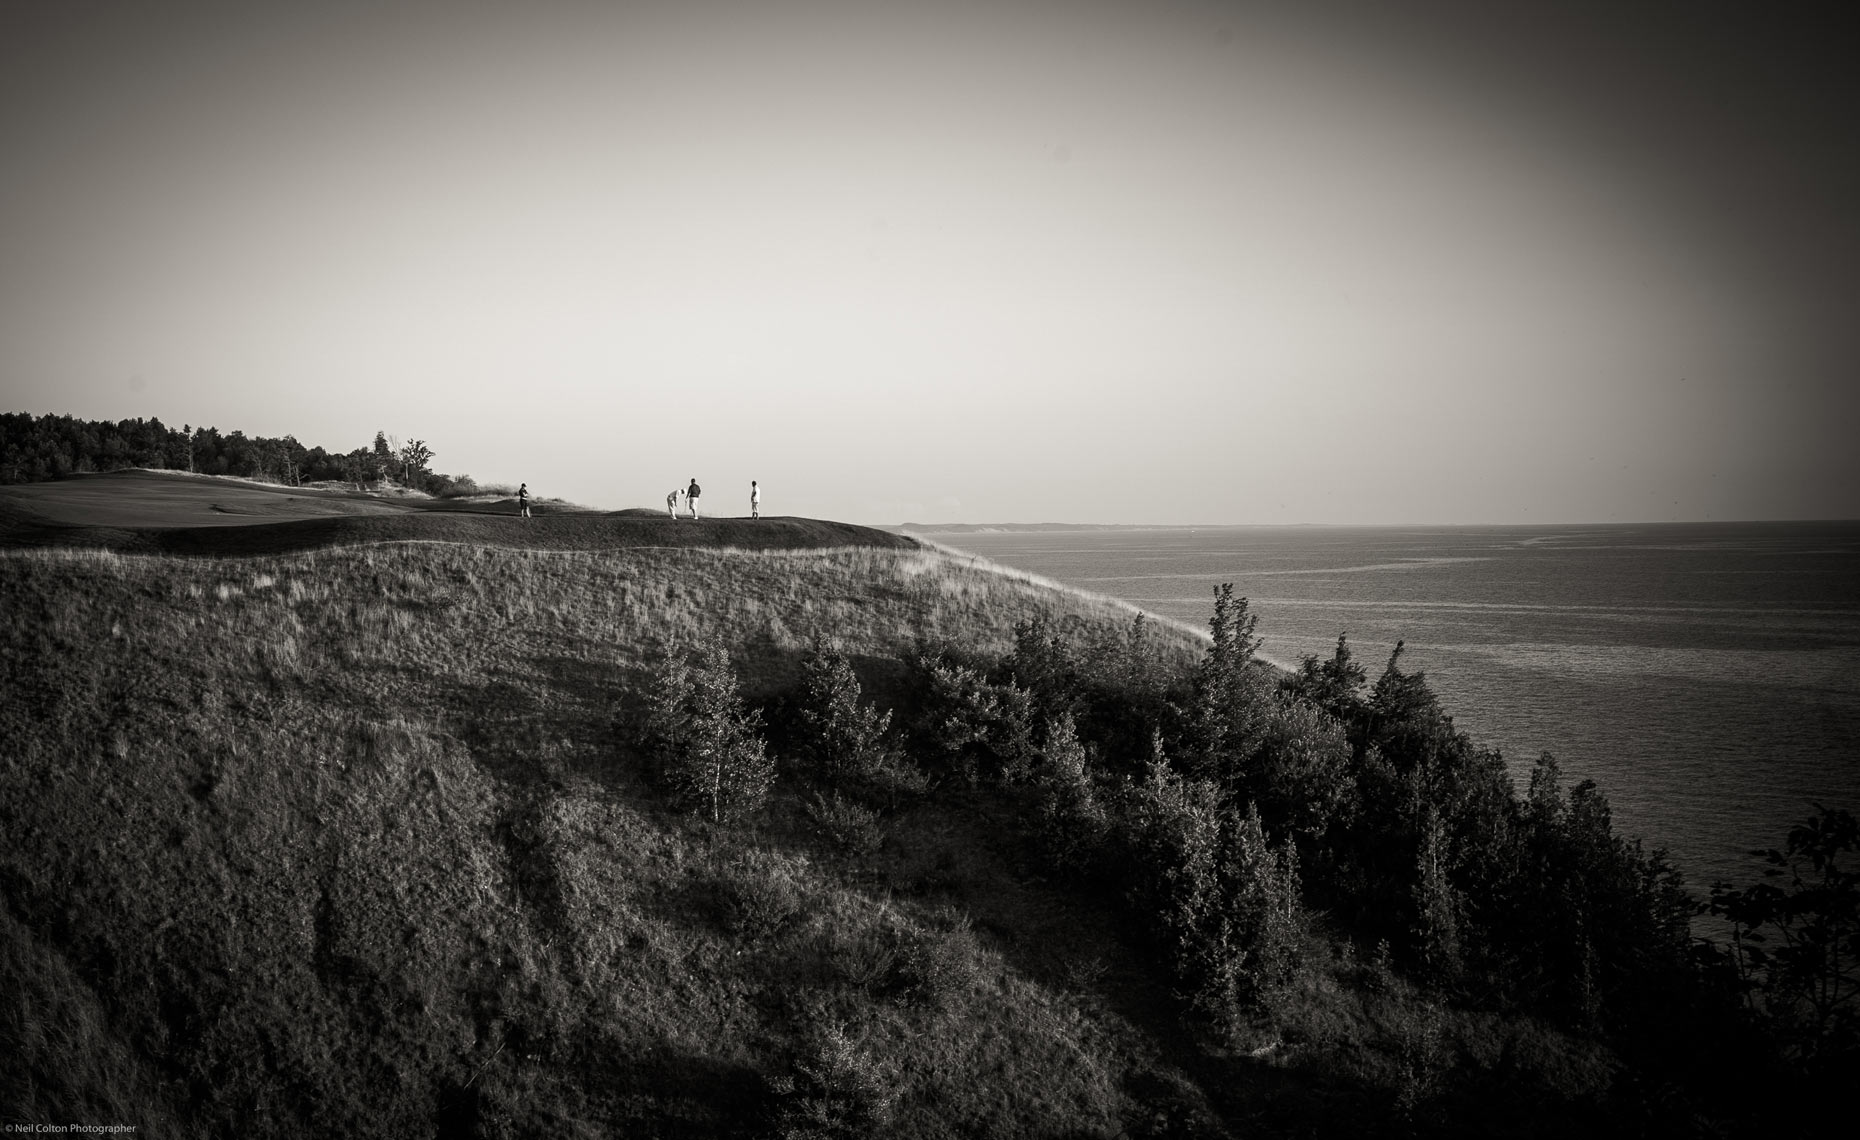 Neil-Colton-lifestyle-photographre-arcadia-bluffs-gc-10